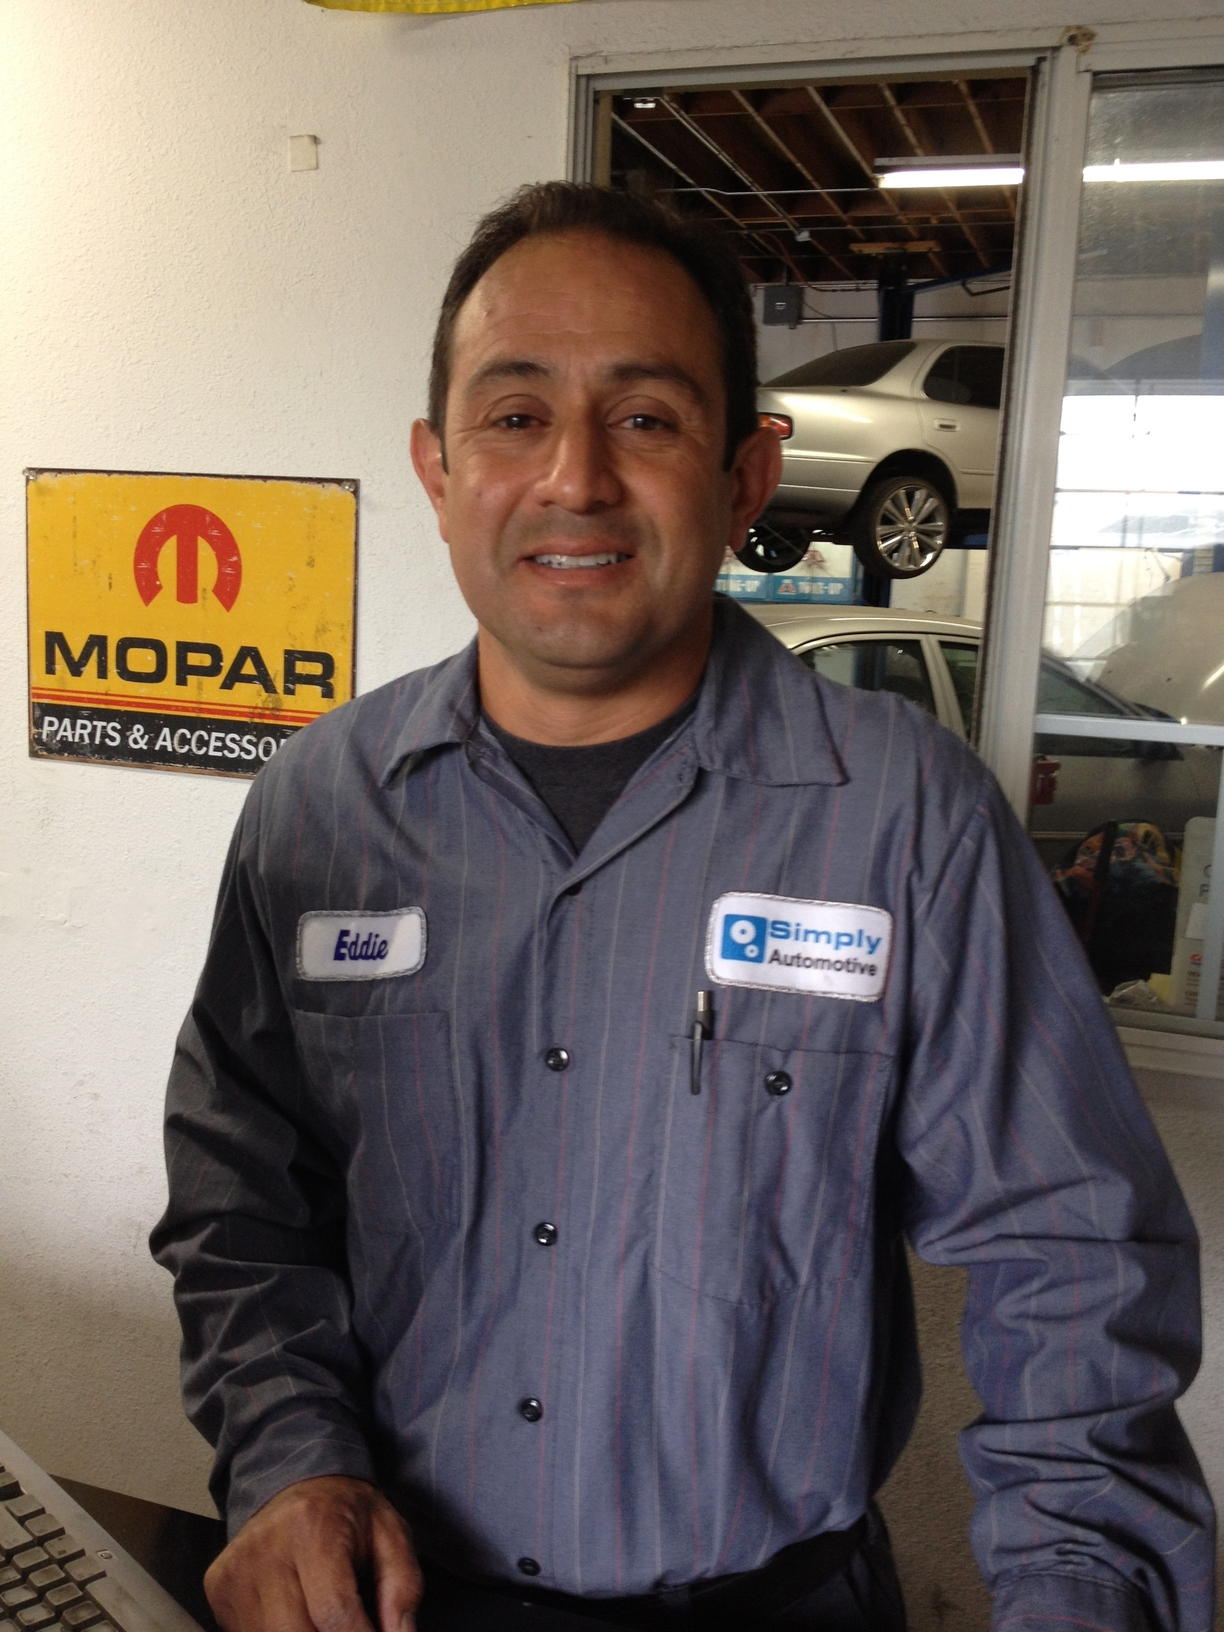 Simply Automotive, Goleta CA, 93117, Auto Repair, Engine Repair, Brake Service, Timing Belt Replacement and Oil Change Service